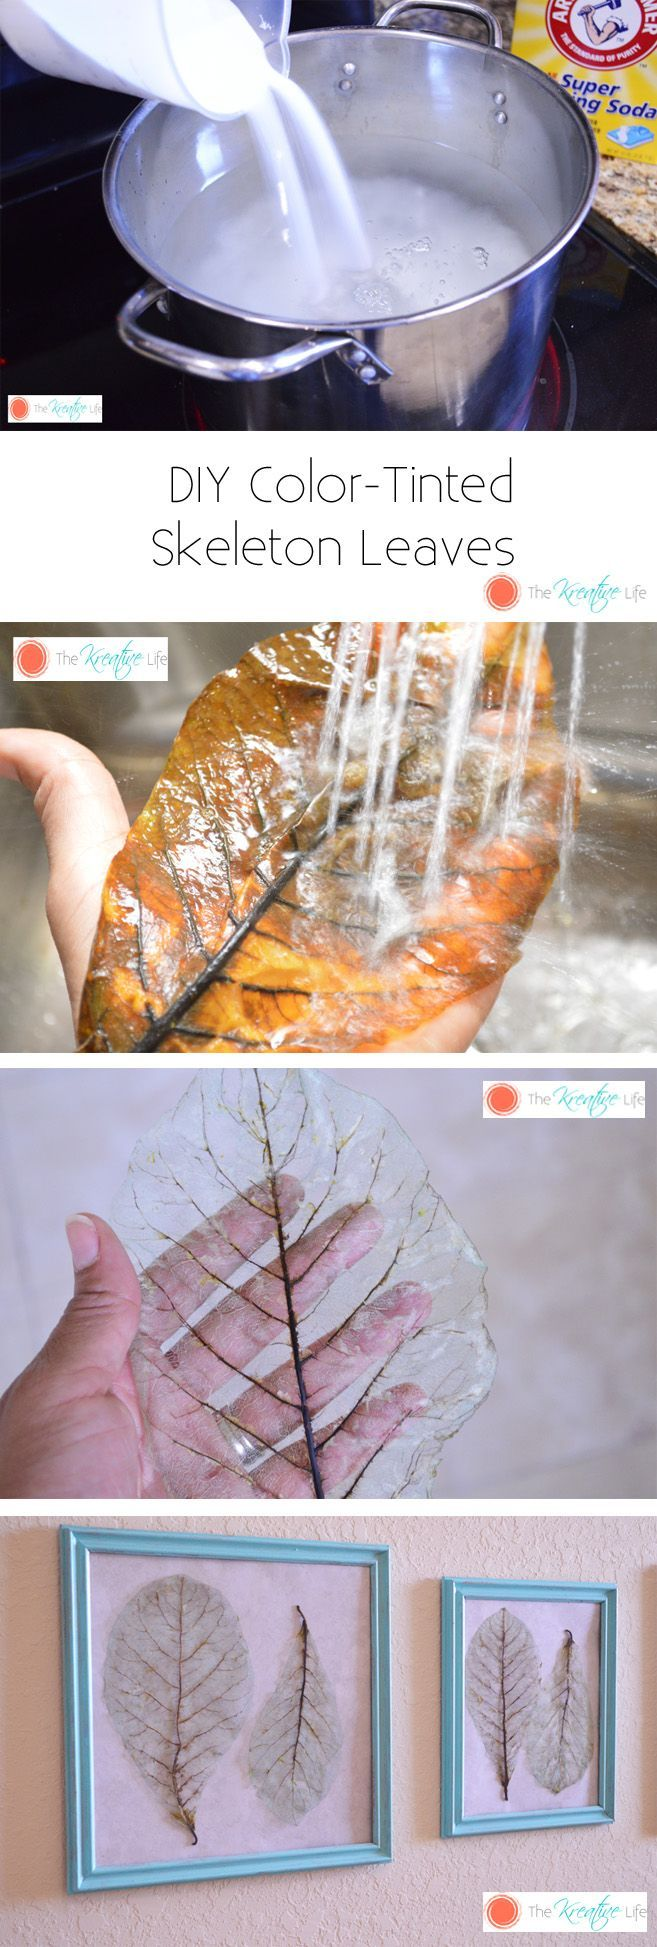 Loving this DIY project for autumn. One more way to enjoy those lovely leaves.